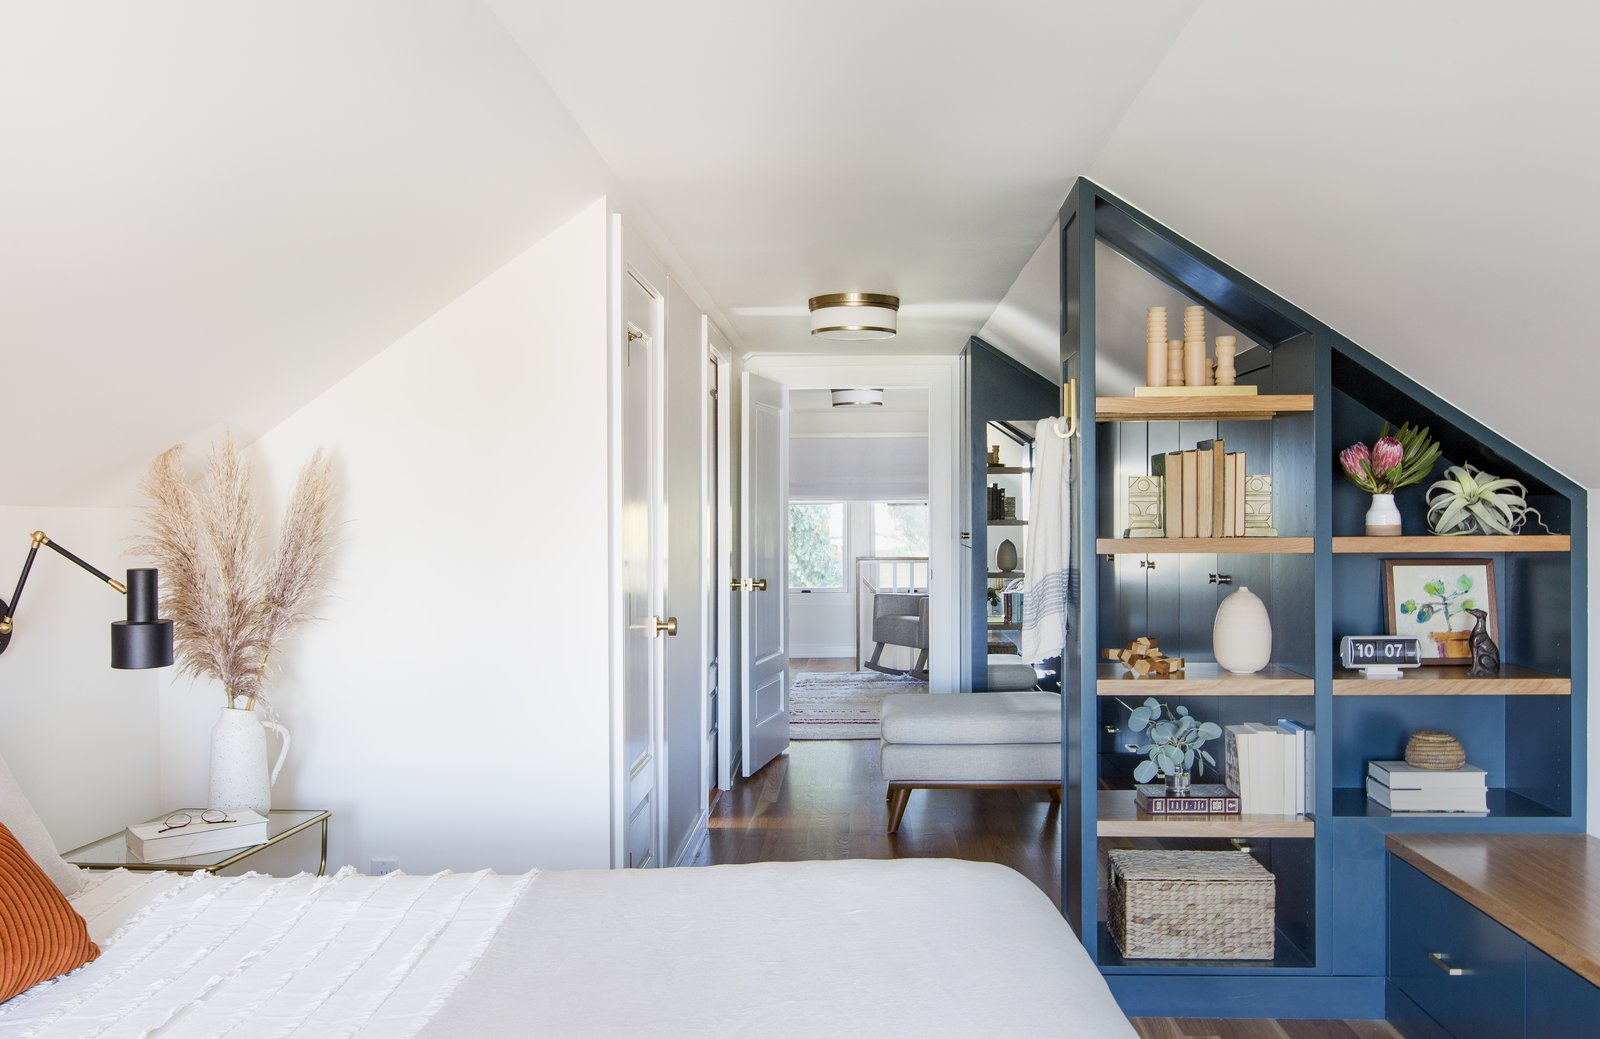 Before & After: A 1912 Seattle Home Gets a Modern Refresh and a New Nursery